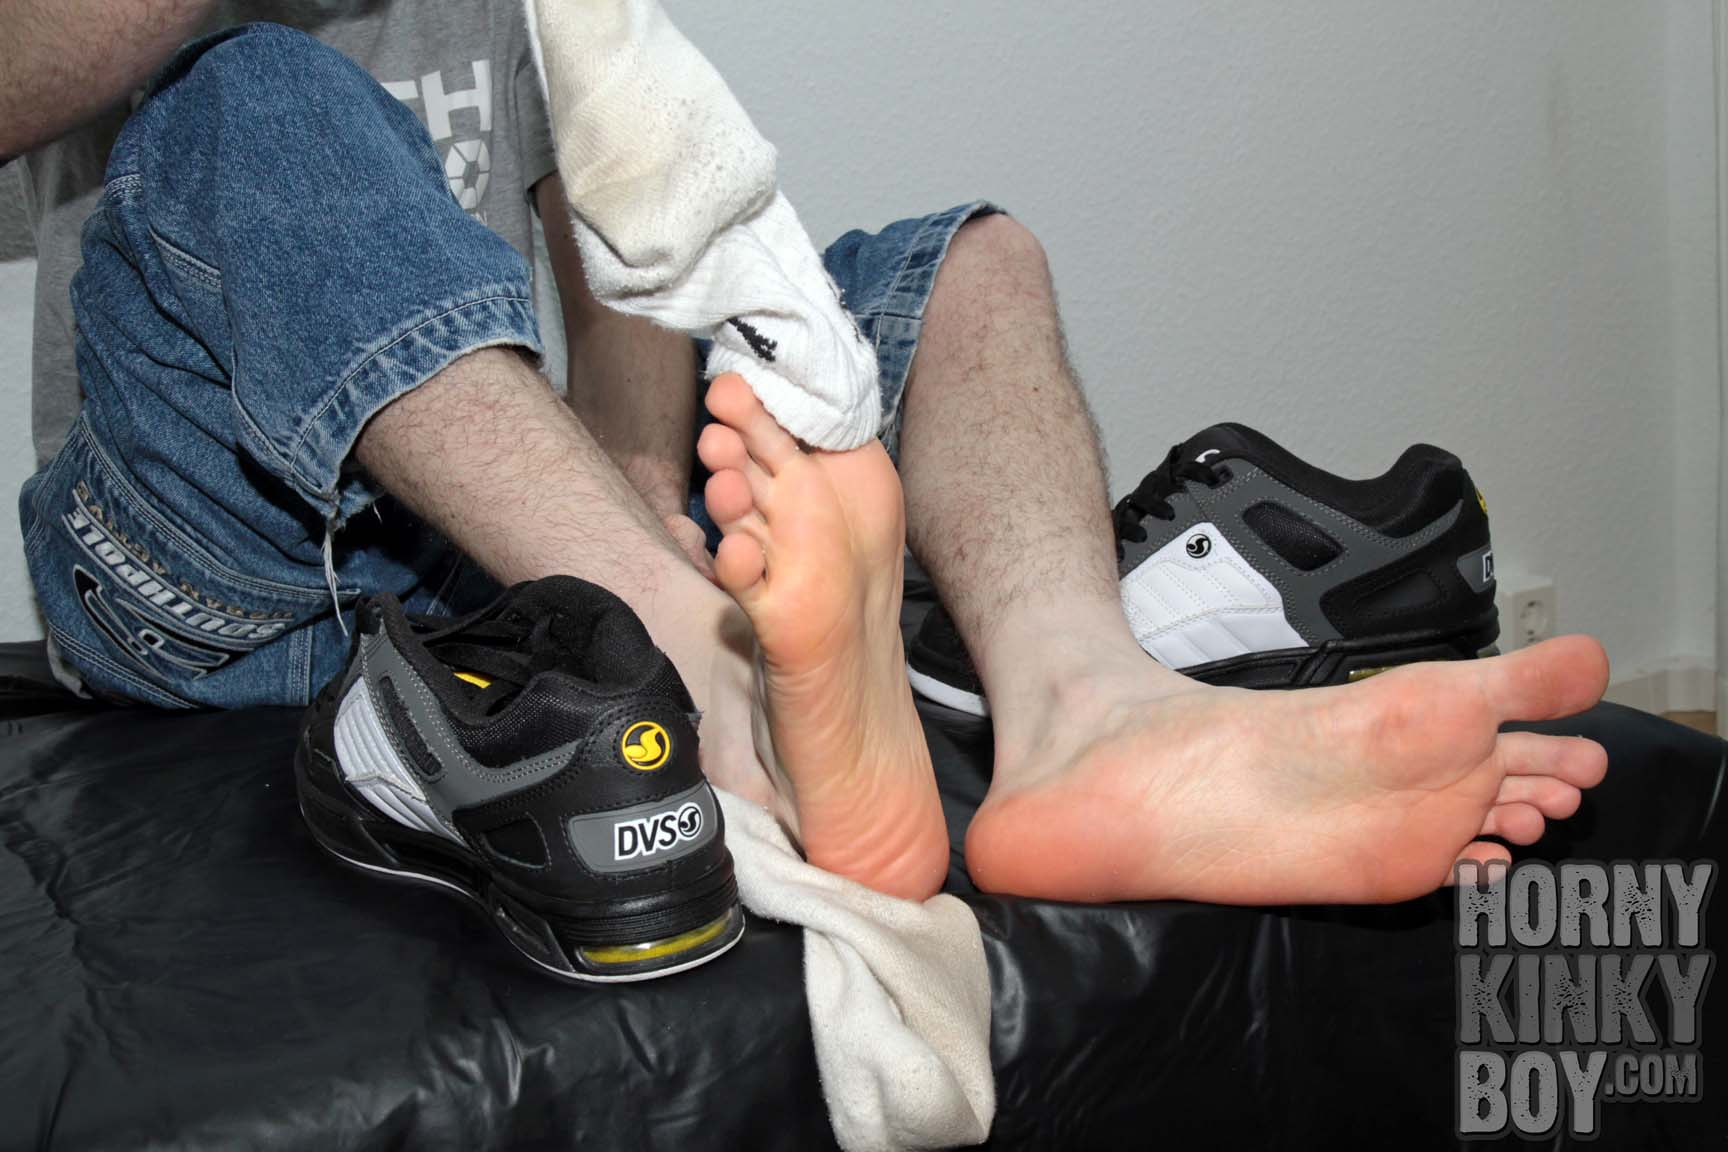 Skater Guy With Sneaker, Socks, And Foot Fetish I